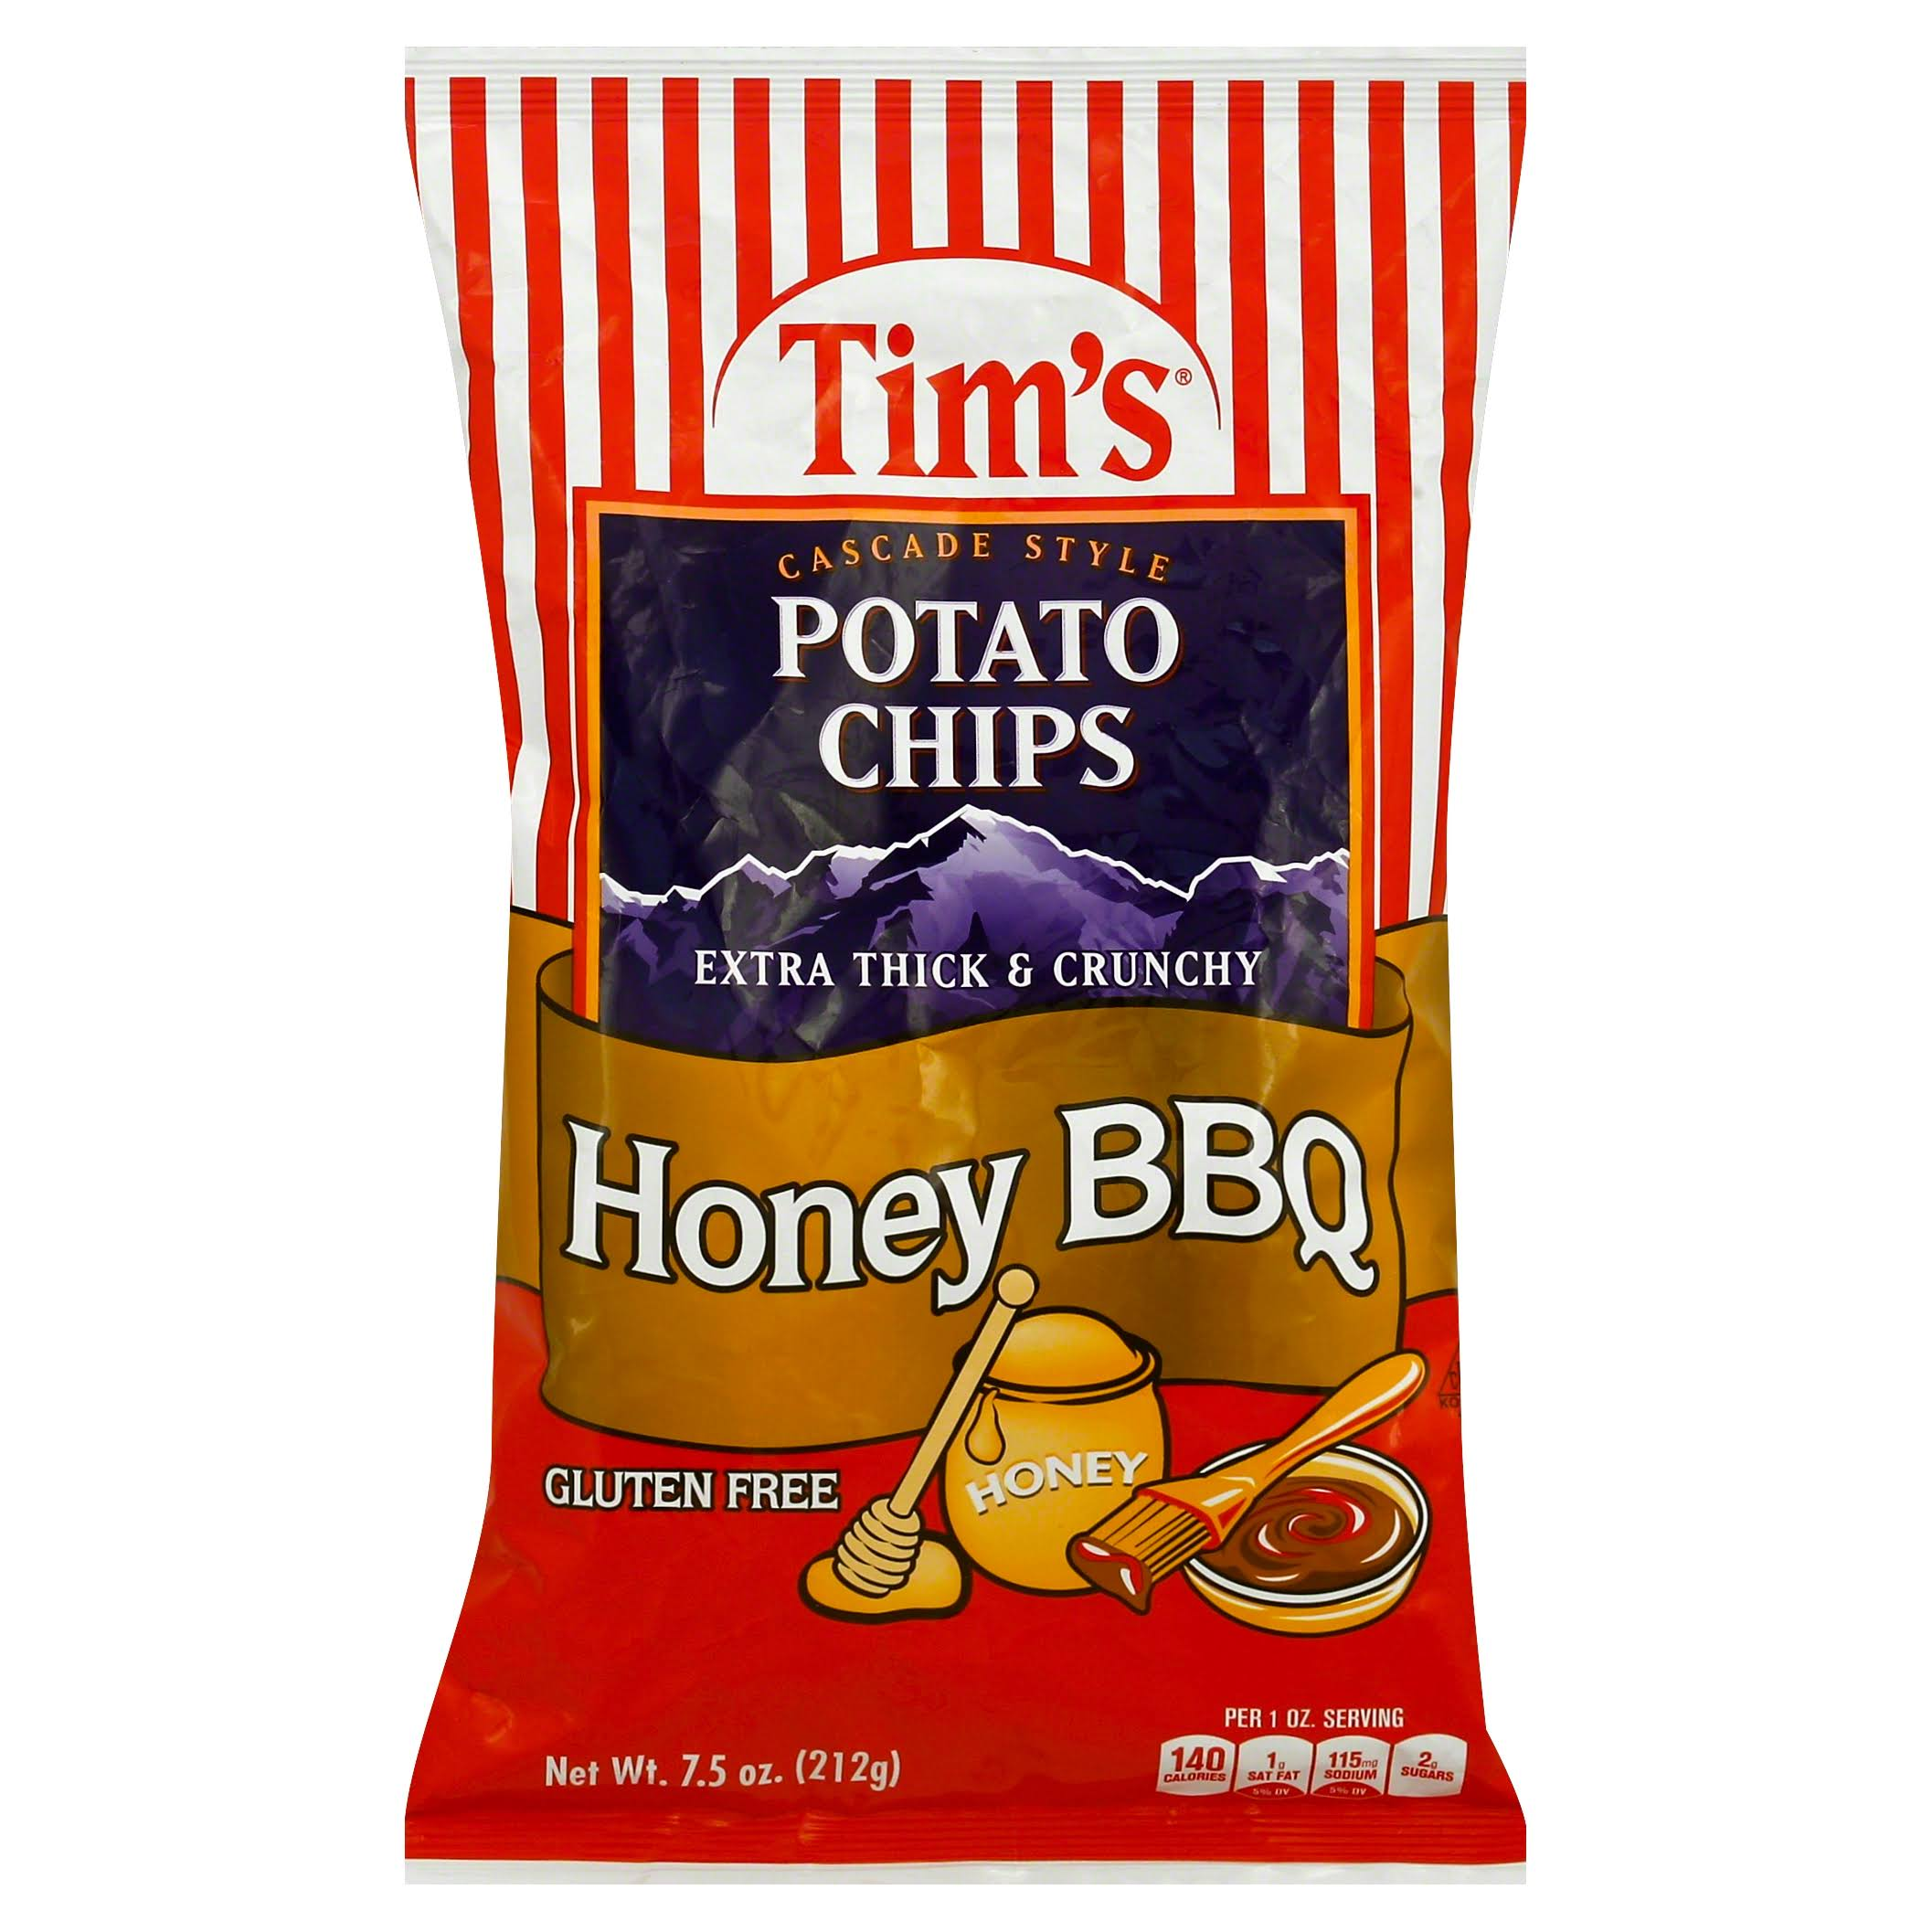 Tim's Cascade Style Honey BBQ Potato Chips